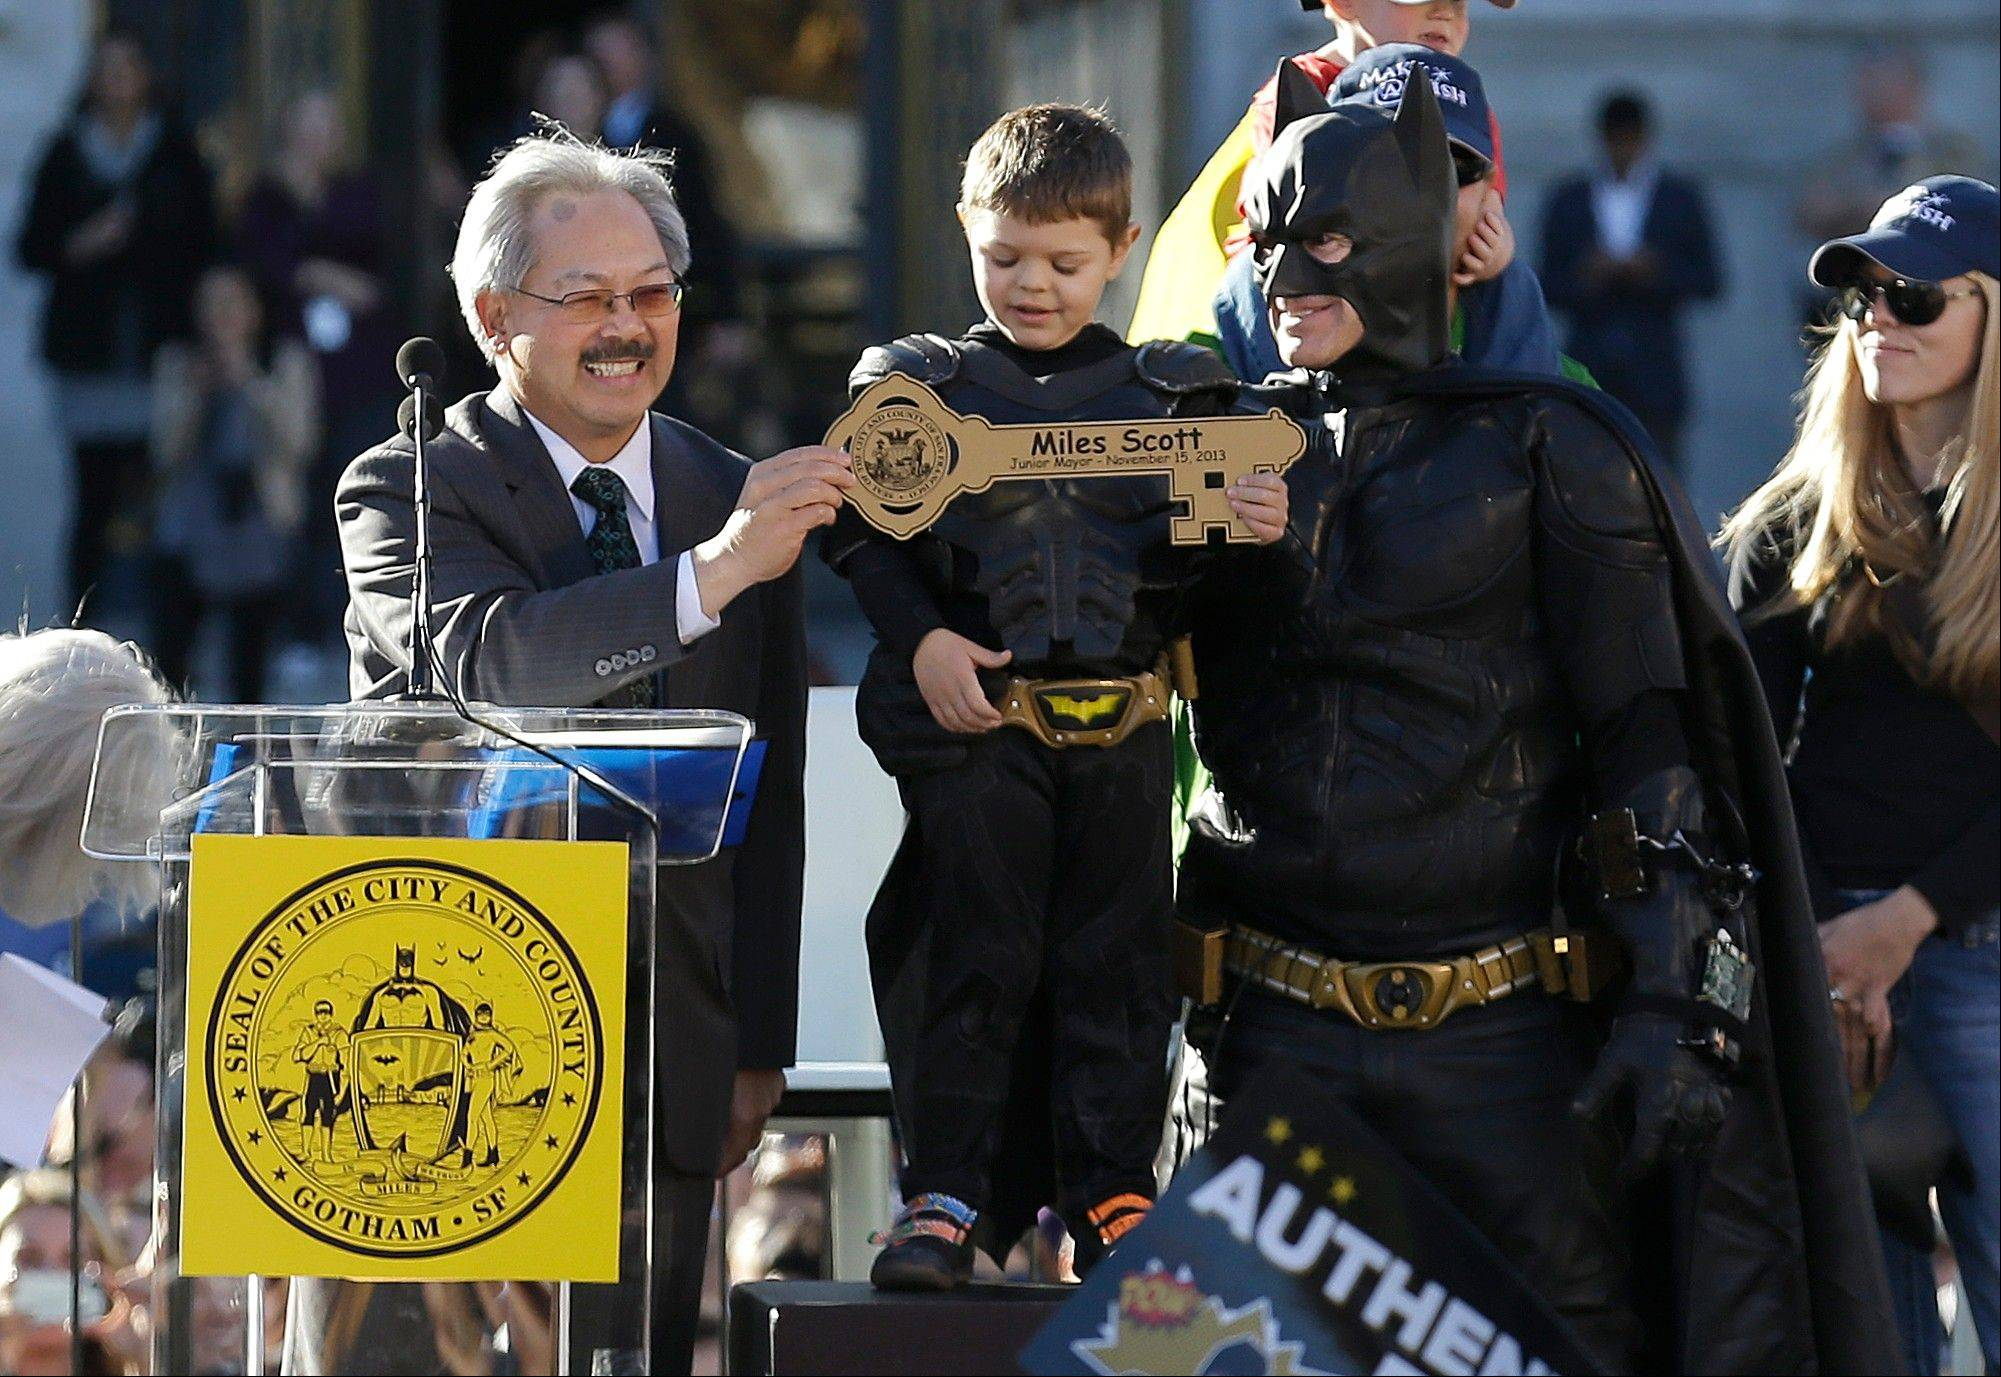 Miles Scott, dressed as Batkid, stands next to Batman as he receives the key to the city from San Francisco Mayor Ed Lee, left, at a rally outside of City Hall in San Francisco, Friday, Nov. 15, 2013. Scott was called into service on Friday morning by San Francisco Police Chief Greg Suhr to help fight crime, as San Francisco turned into Gotham City as city officials helped fulfill the 5-year-old leukemia patient�s wish to be �Batkid,� The Greater Bay Area Make-A-Wish Foundation says.